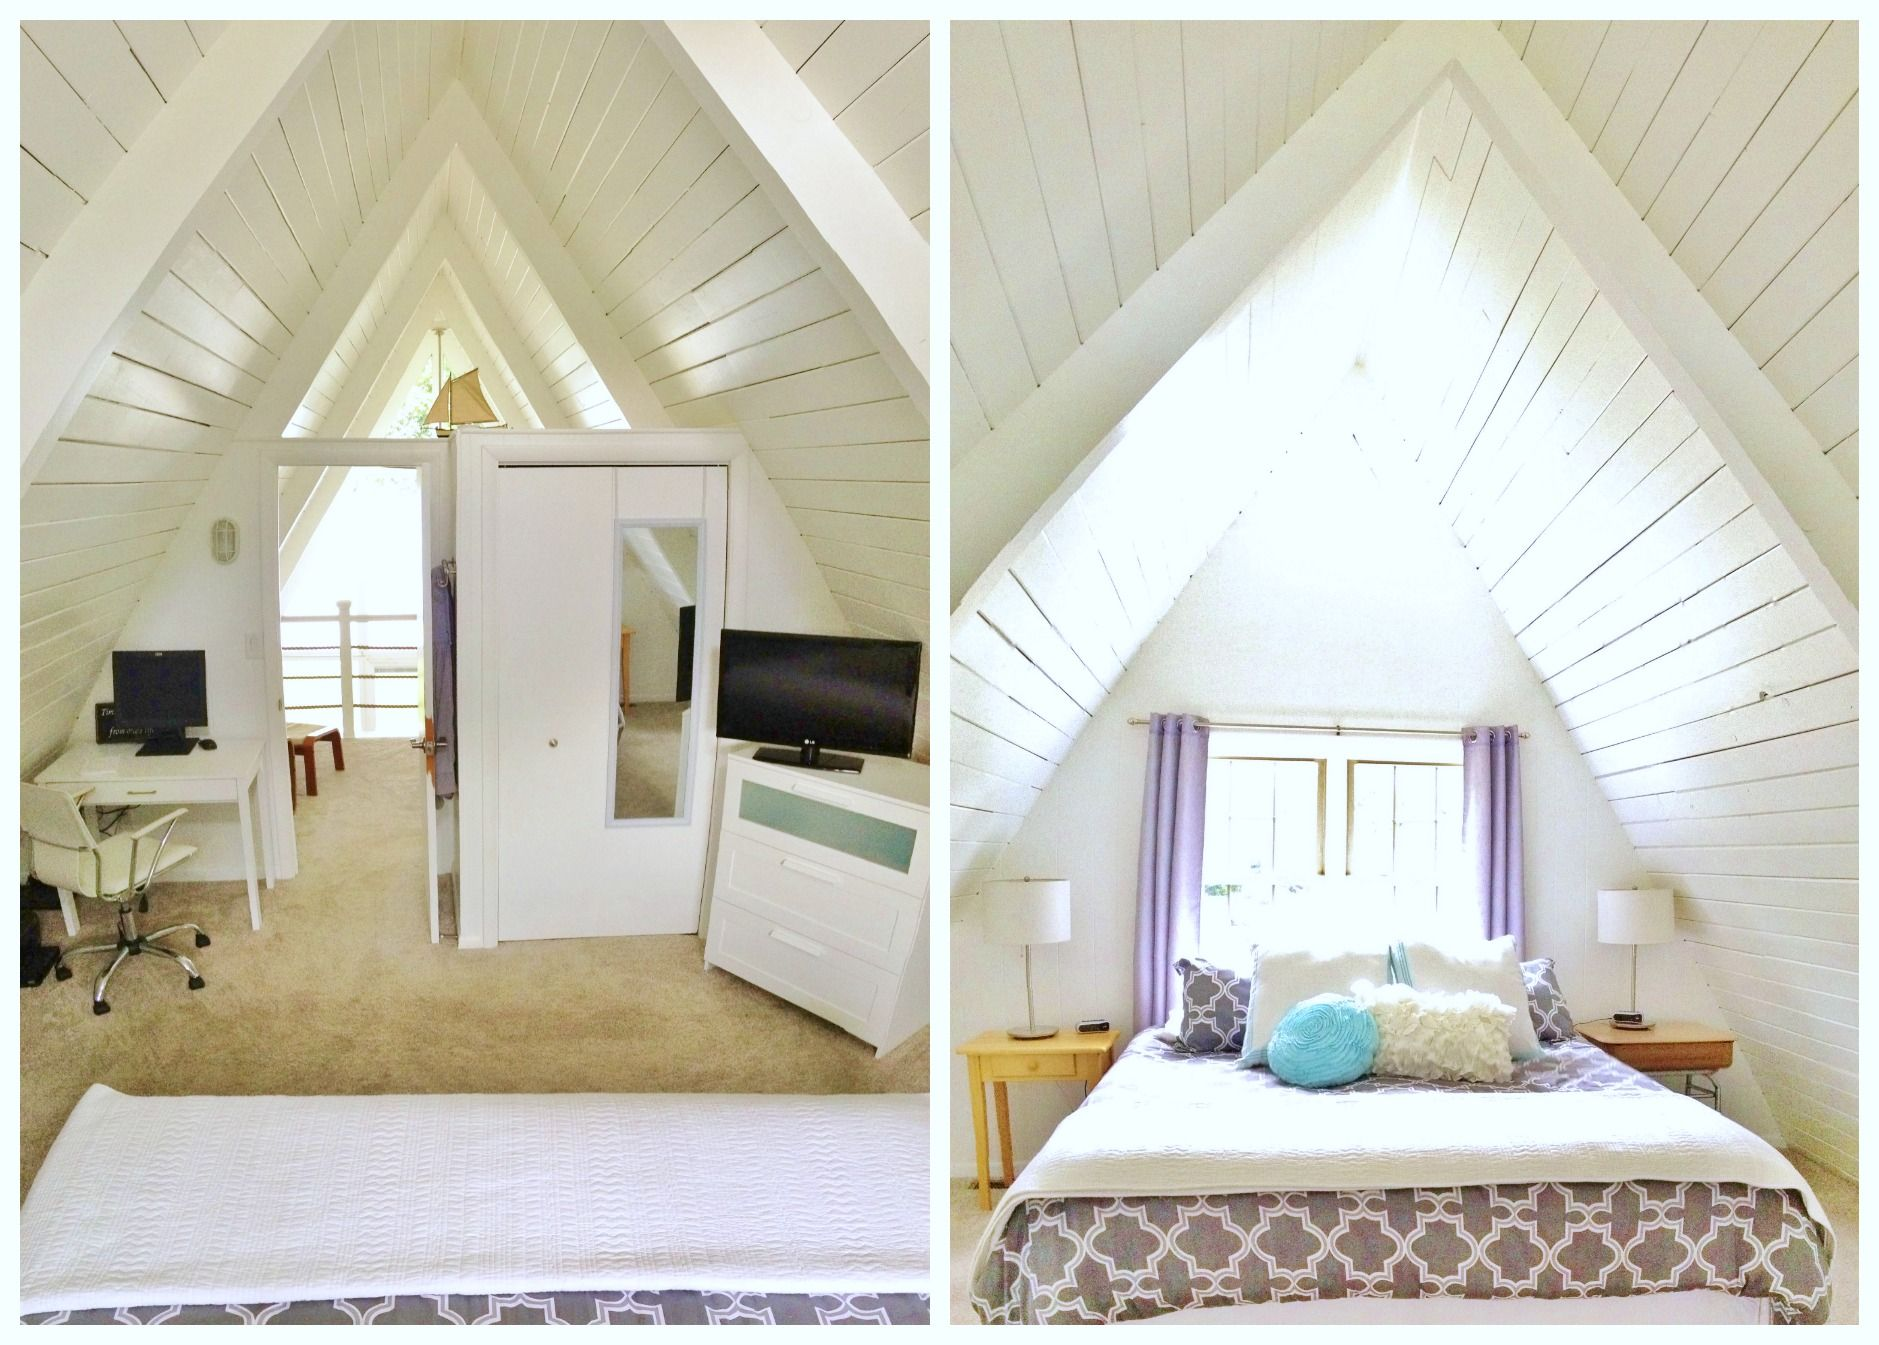 North And South View Of A-Frame Upstairs Master Bedroom